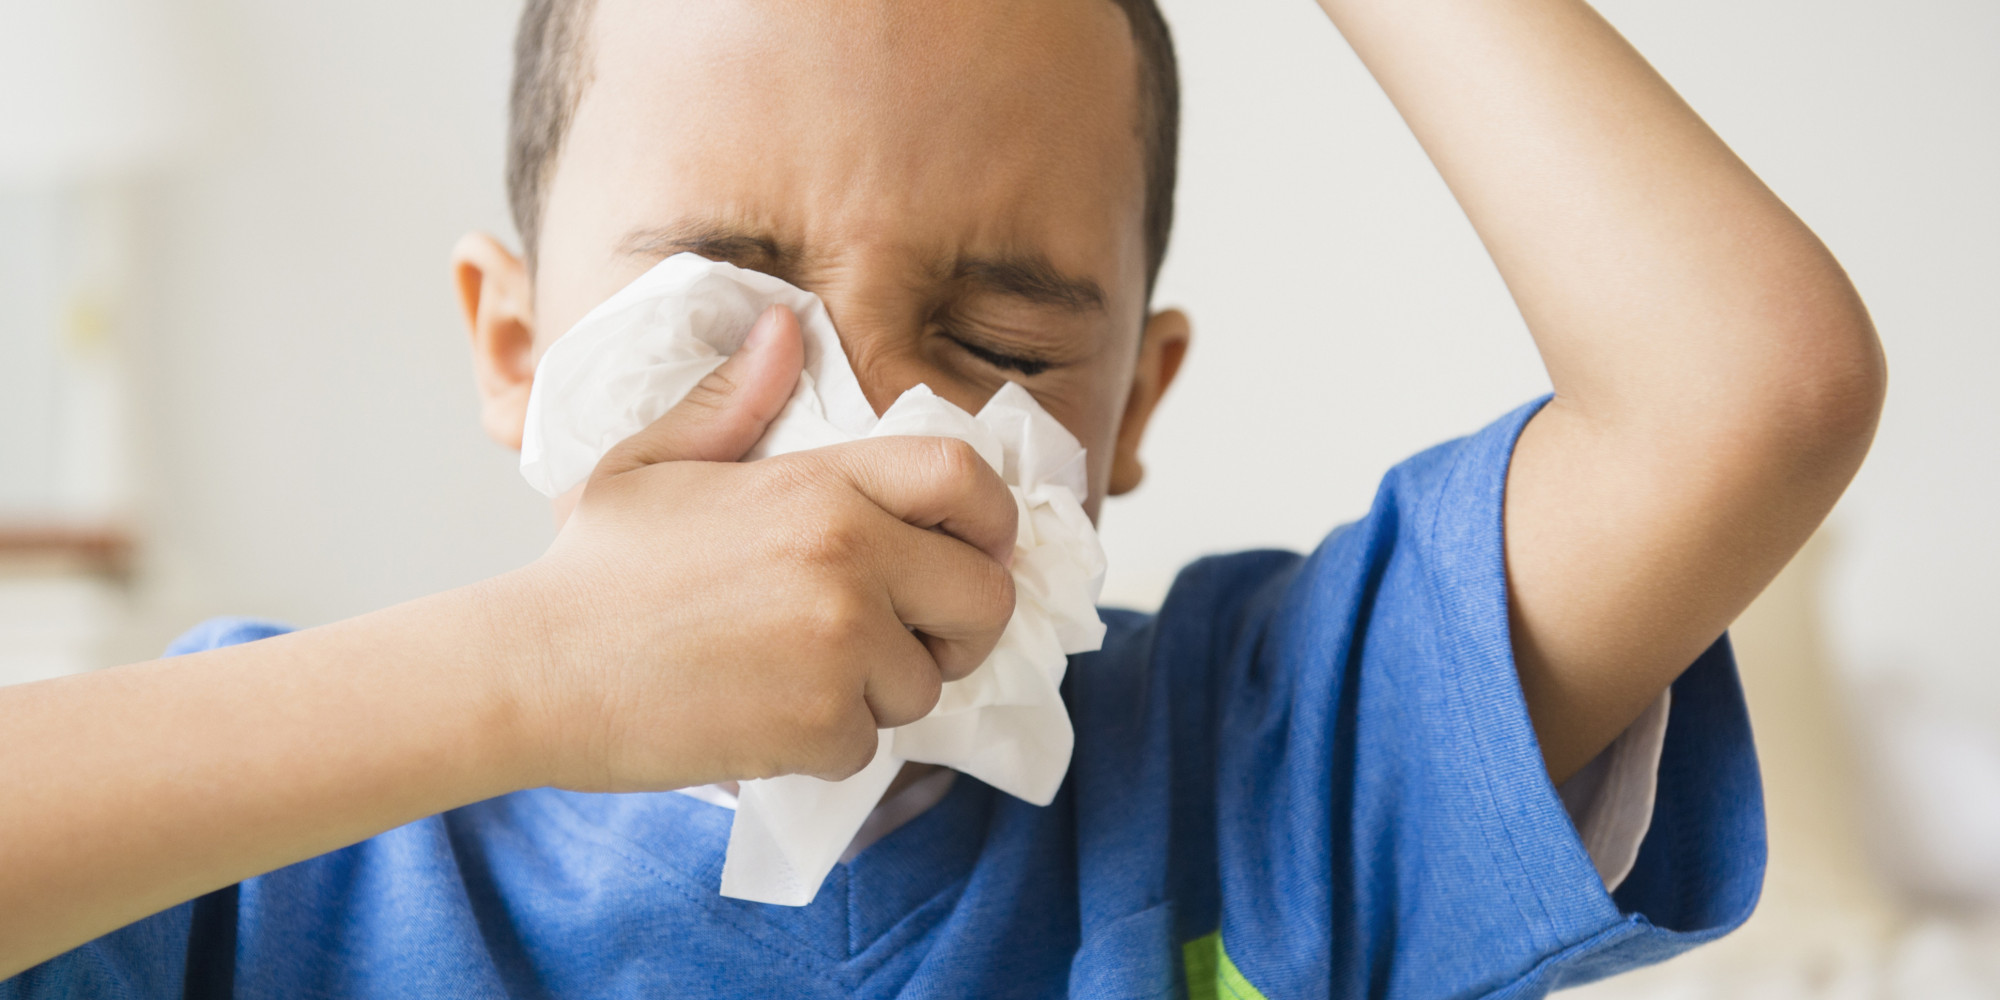 Ask Healthy Living: Where Does Snot Come From? | HuffPost